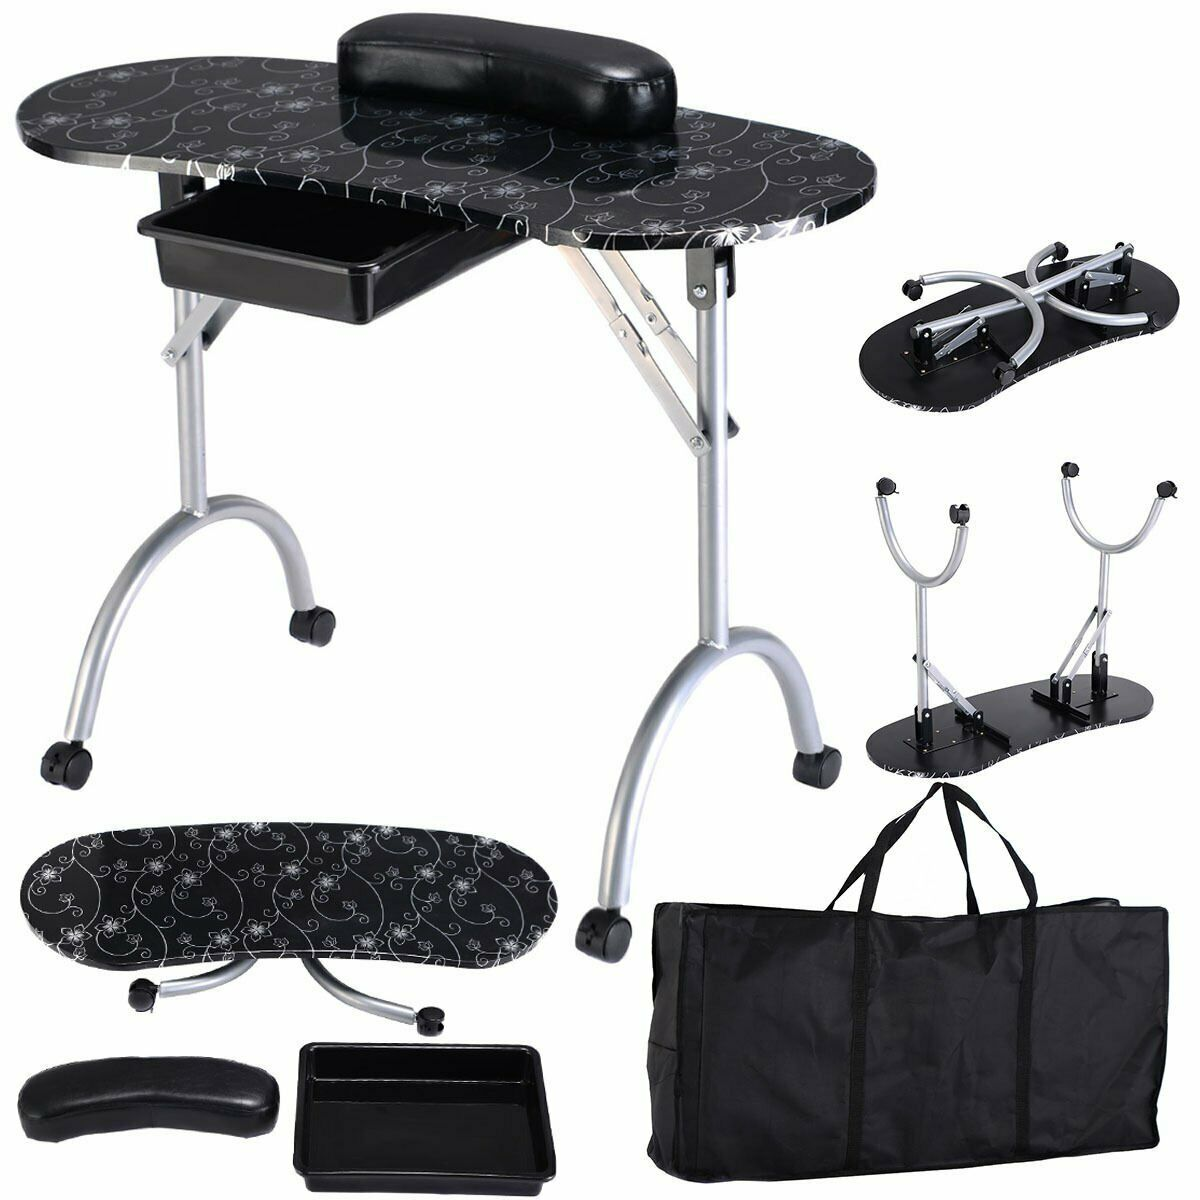 Manicure Foldable Table with Carrying Case